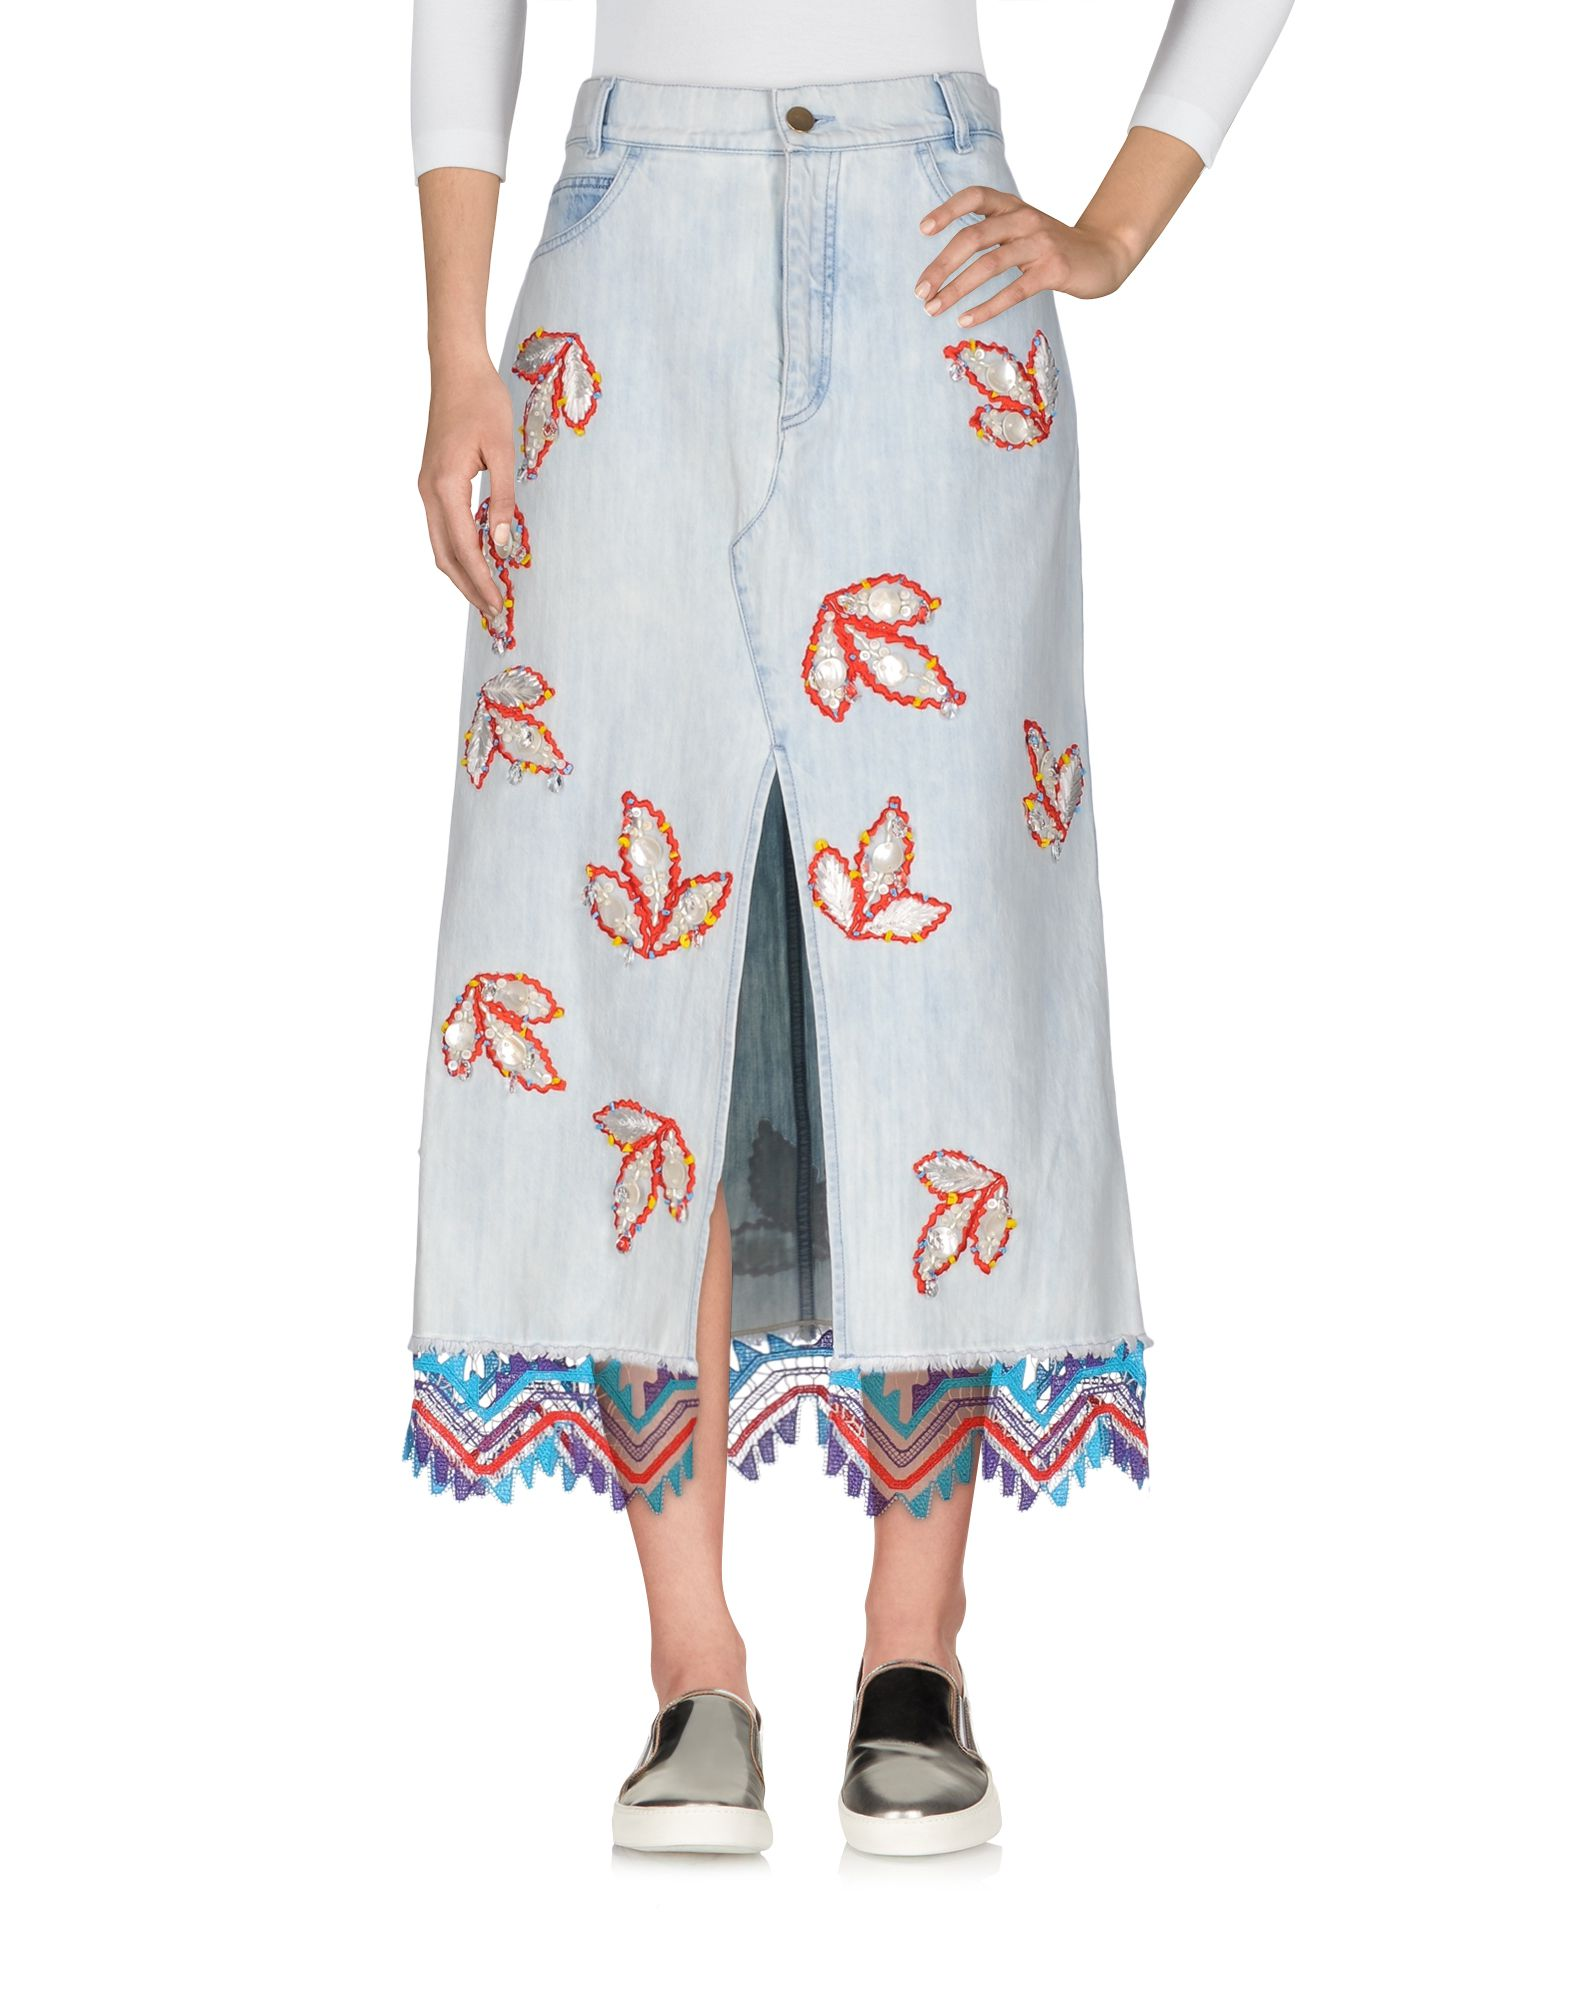 Gonna Jeans Peter Pilotto Donna - Acquista online su 8ODlnPl